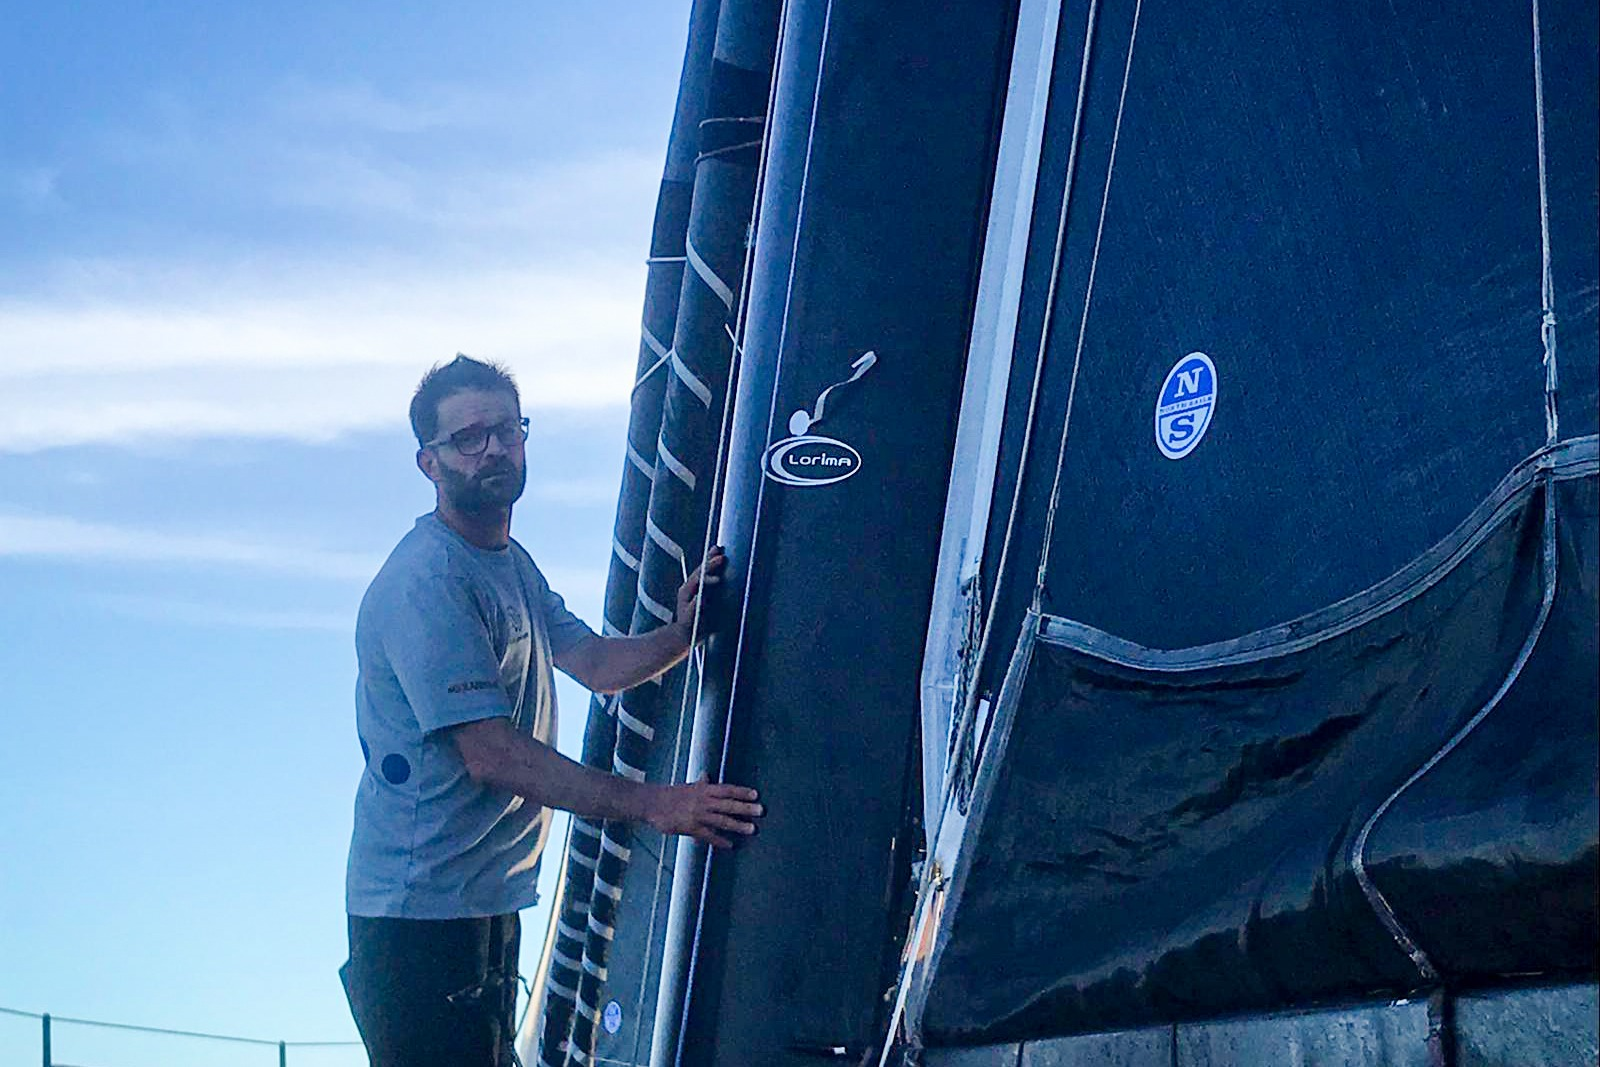 Pascal Bidégorry checks the headsails on Day 11 of racing in the Transat Jacques Vabre,